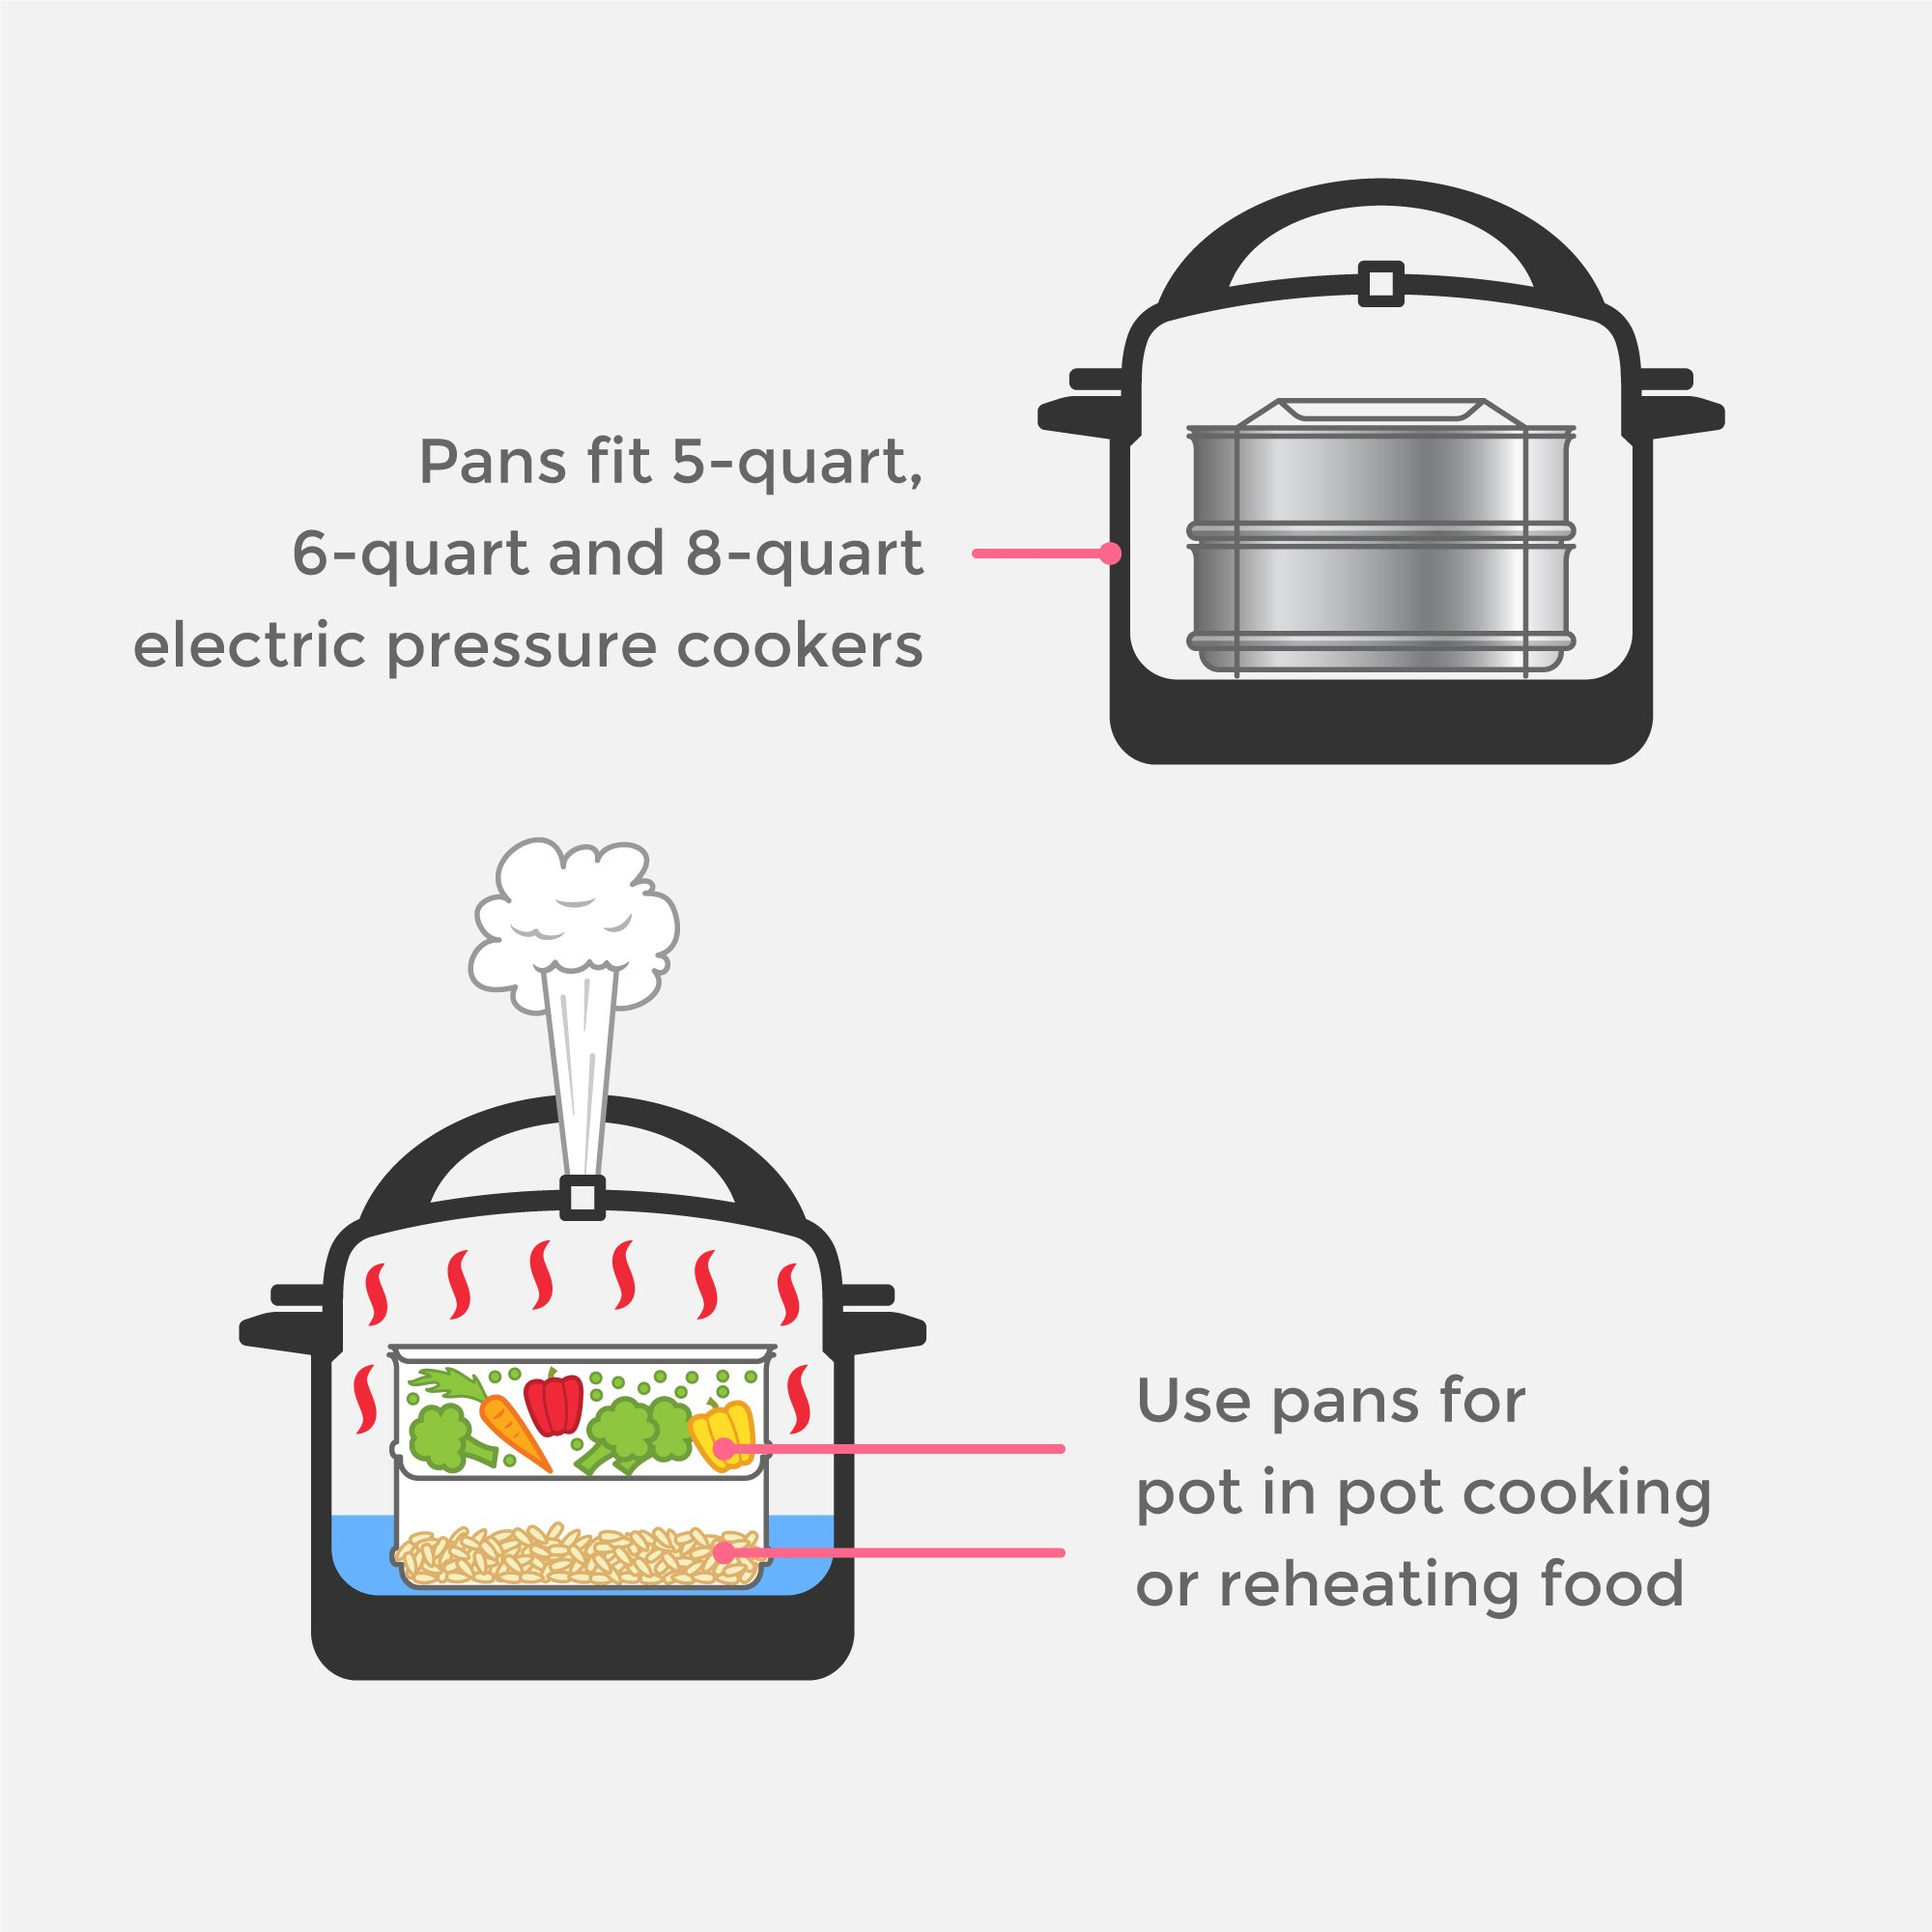 ekovana Stackable Stainless Steel Pressure Cooker Steamer Insert Pans - For Instant Pot Accessories 6 qt by ekovana (Image #5)